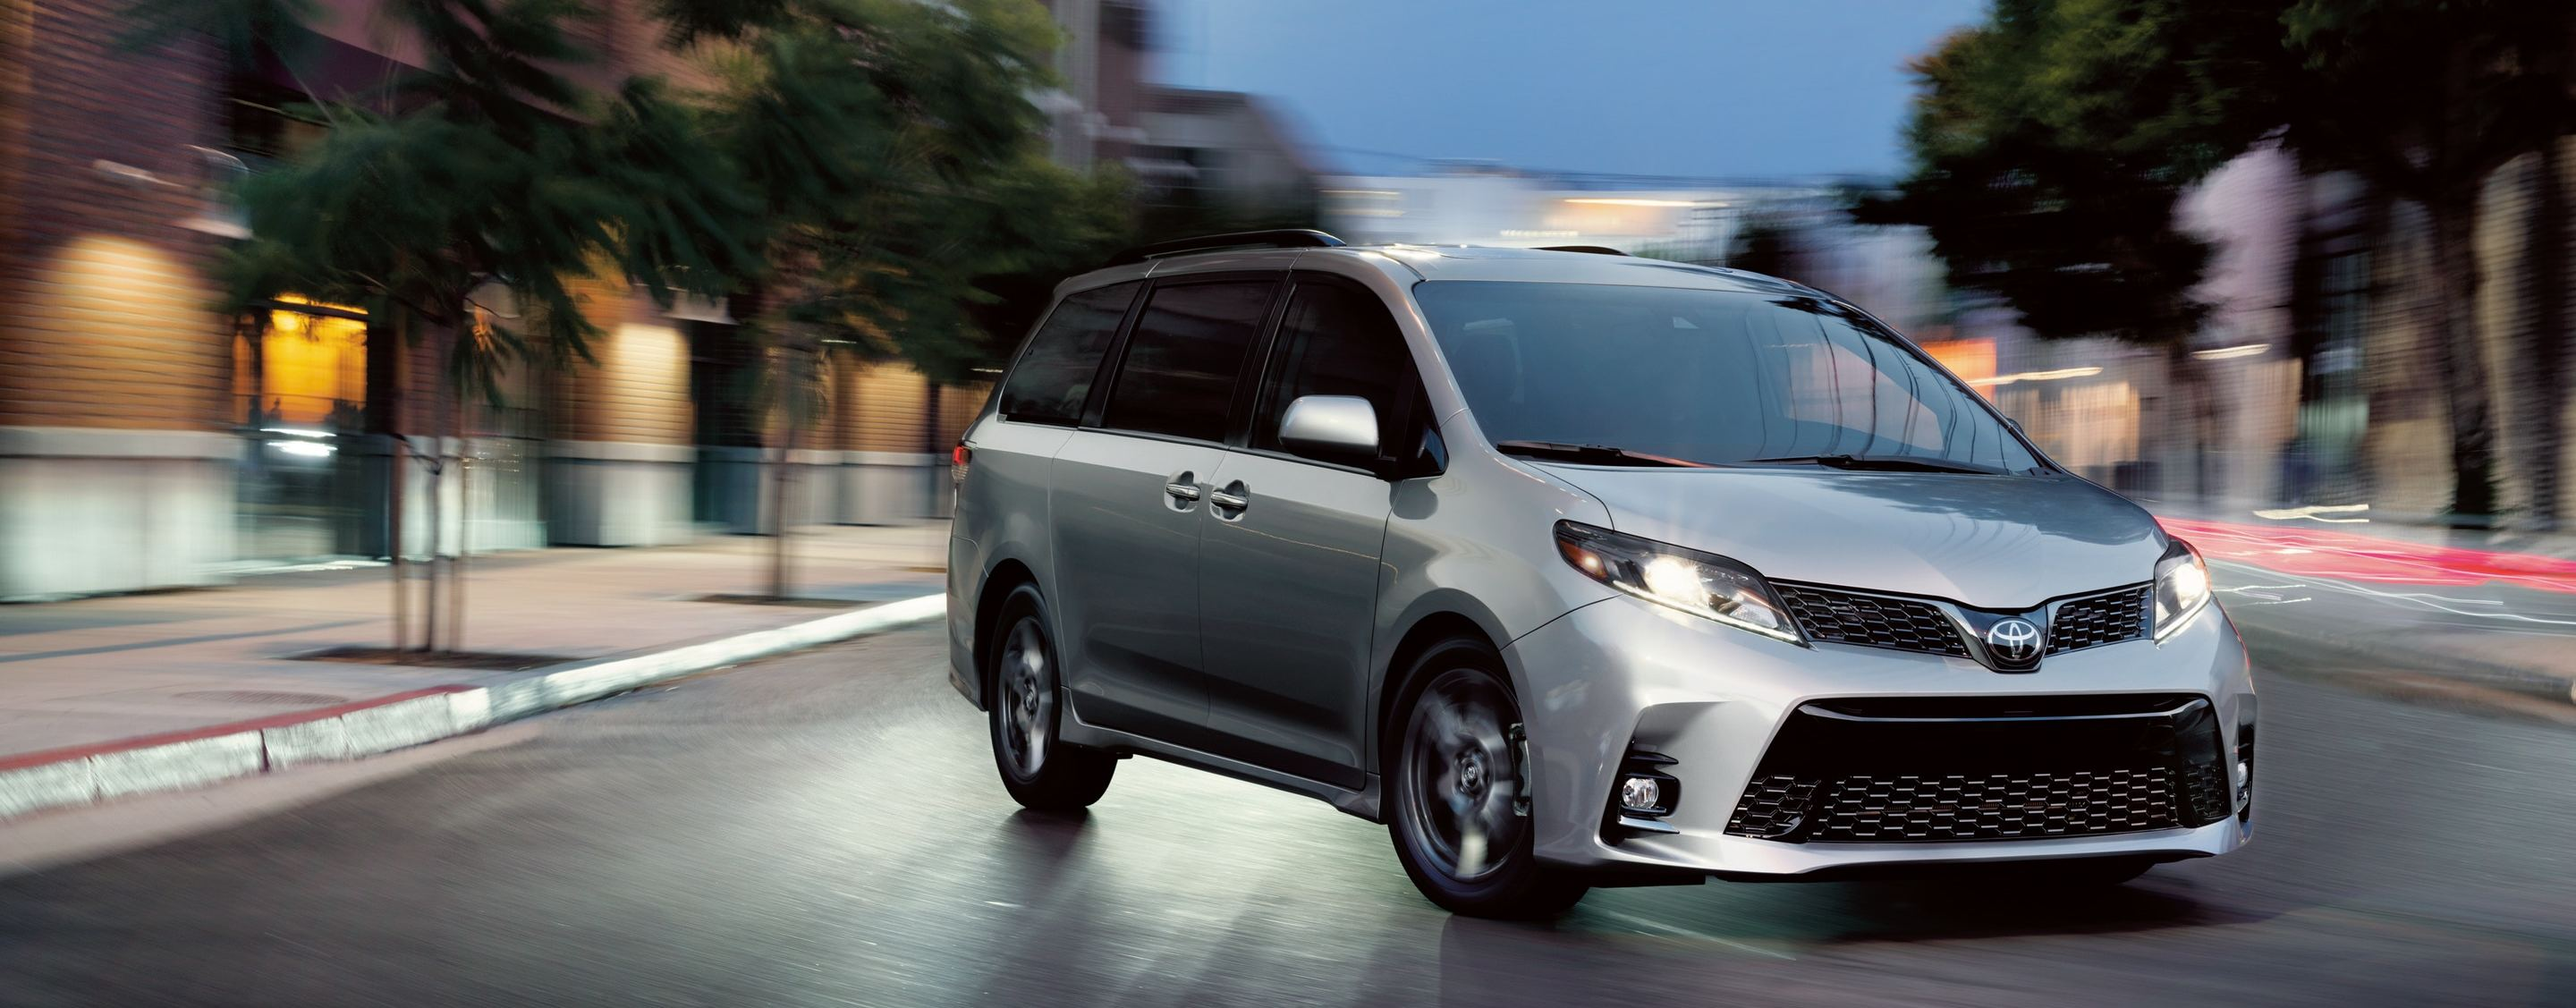 2020 Toyota Sienna Leasing near Westport, CT